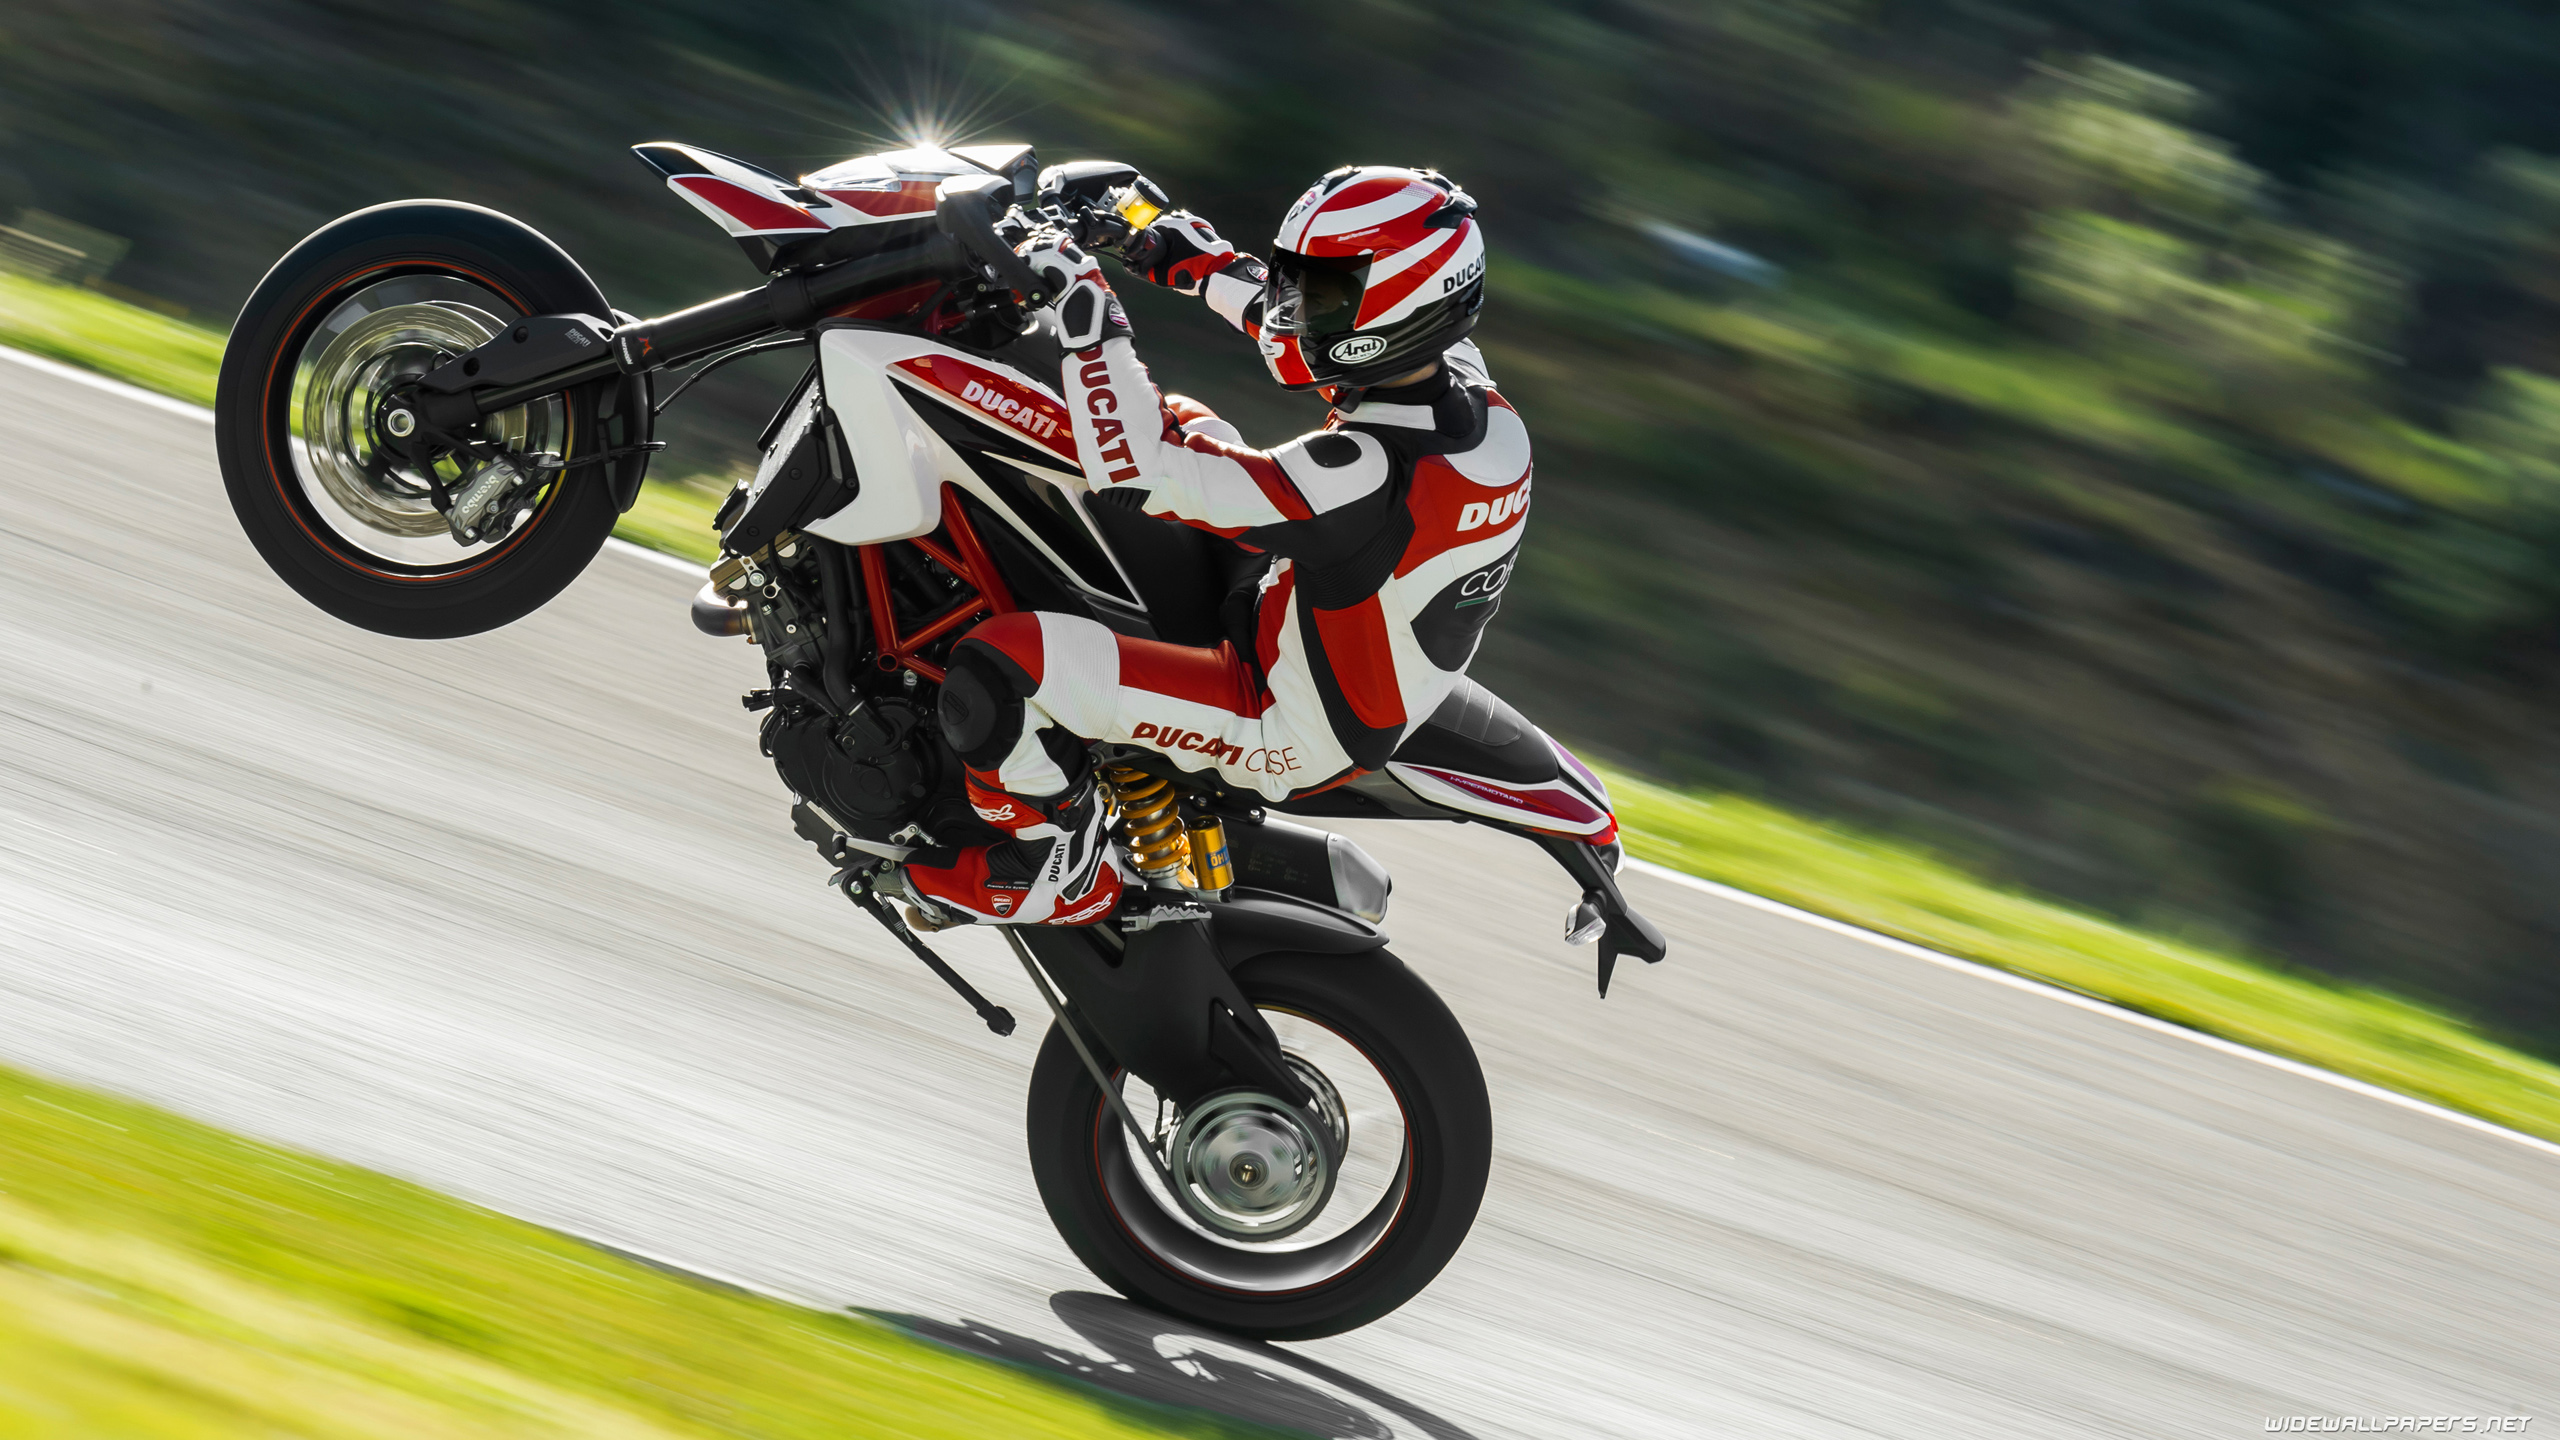 Ducati Hypermotard wallpapers and high resolution pictures